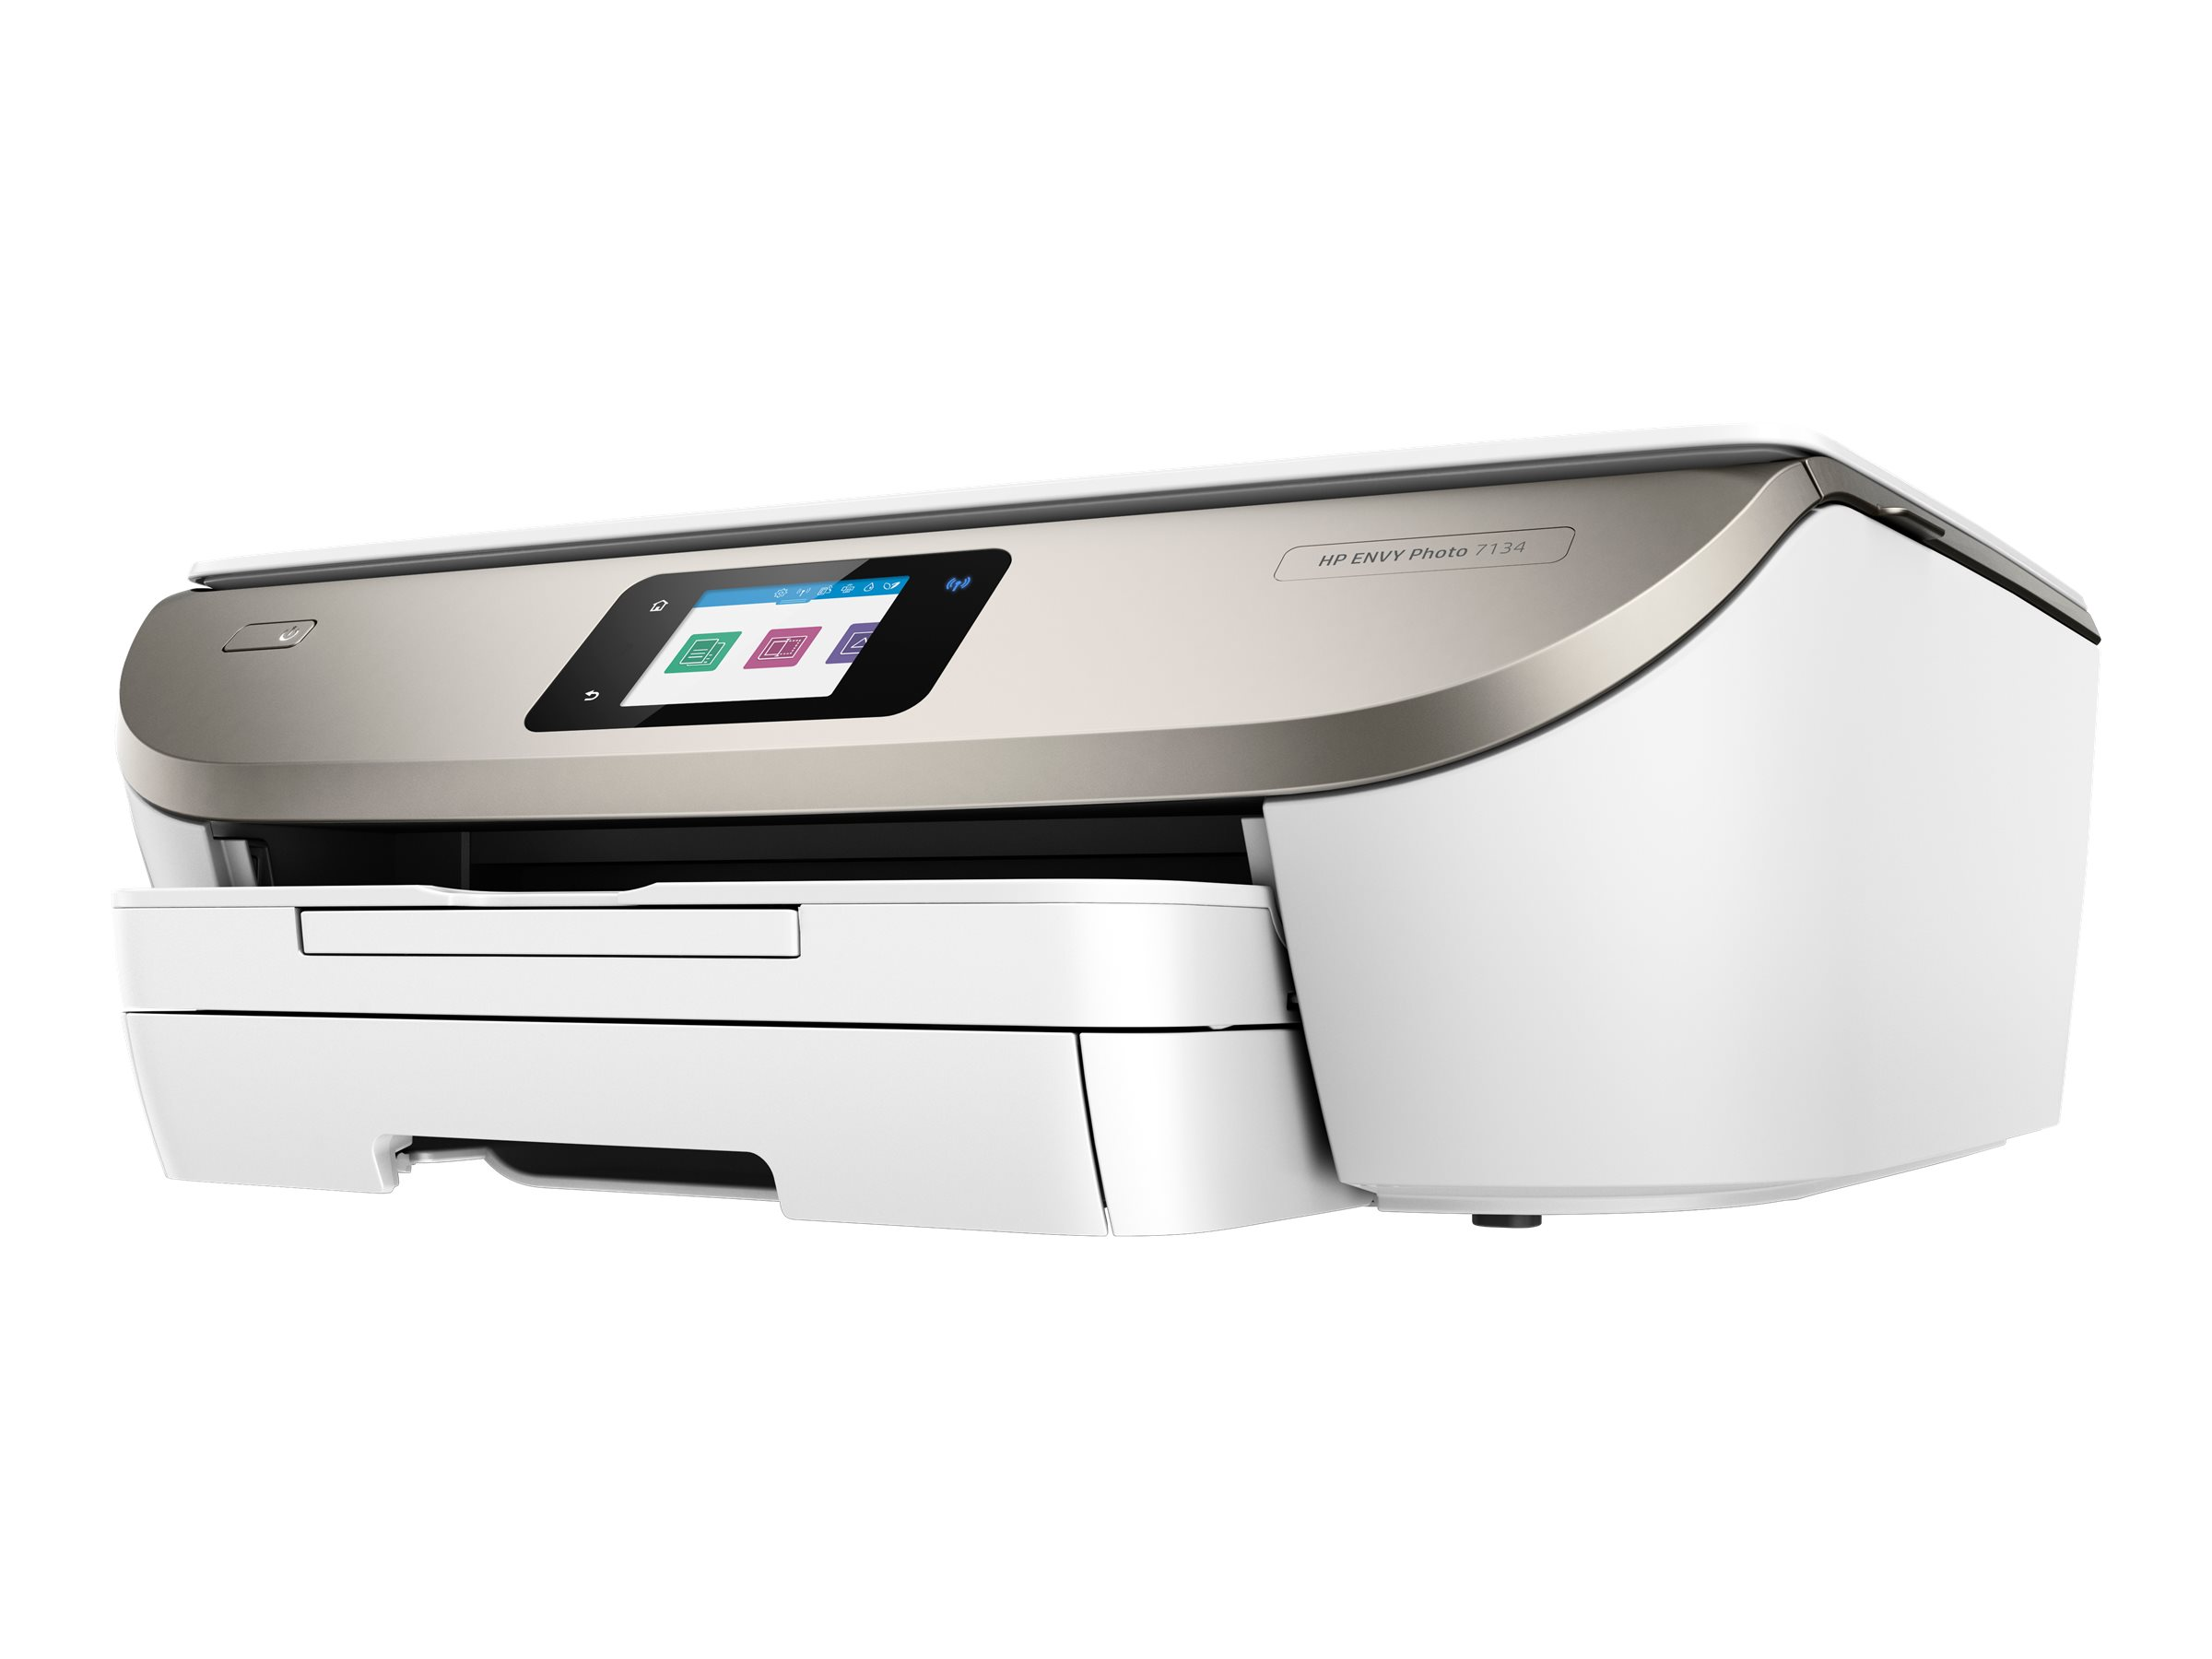 HP Envy Photo 7134 All-in-One - Multifunktionsdrucker - Farbe - Tintenstrahl - 216 x 297 mm (Original) - A4/Legal (Medien)